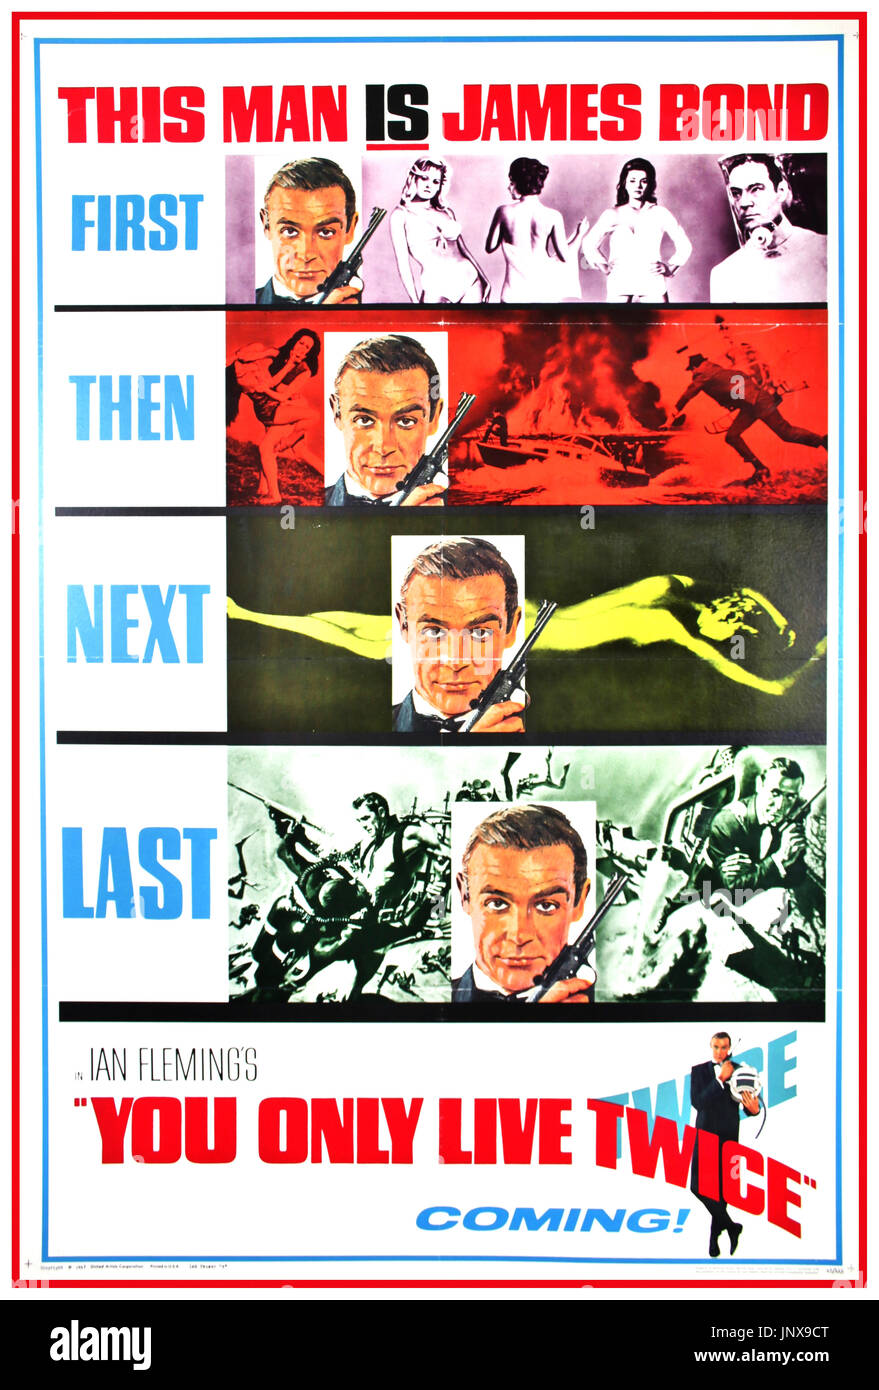 You Only Live Twice Bond Poster Stock Photos & You Only Live Twice